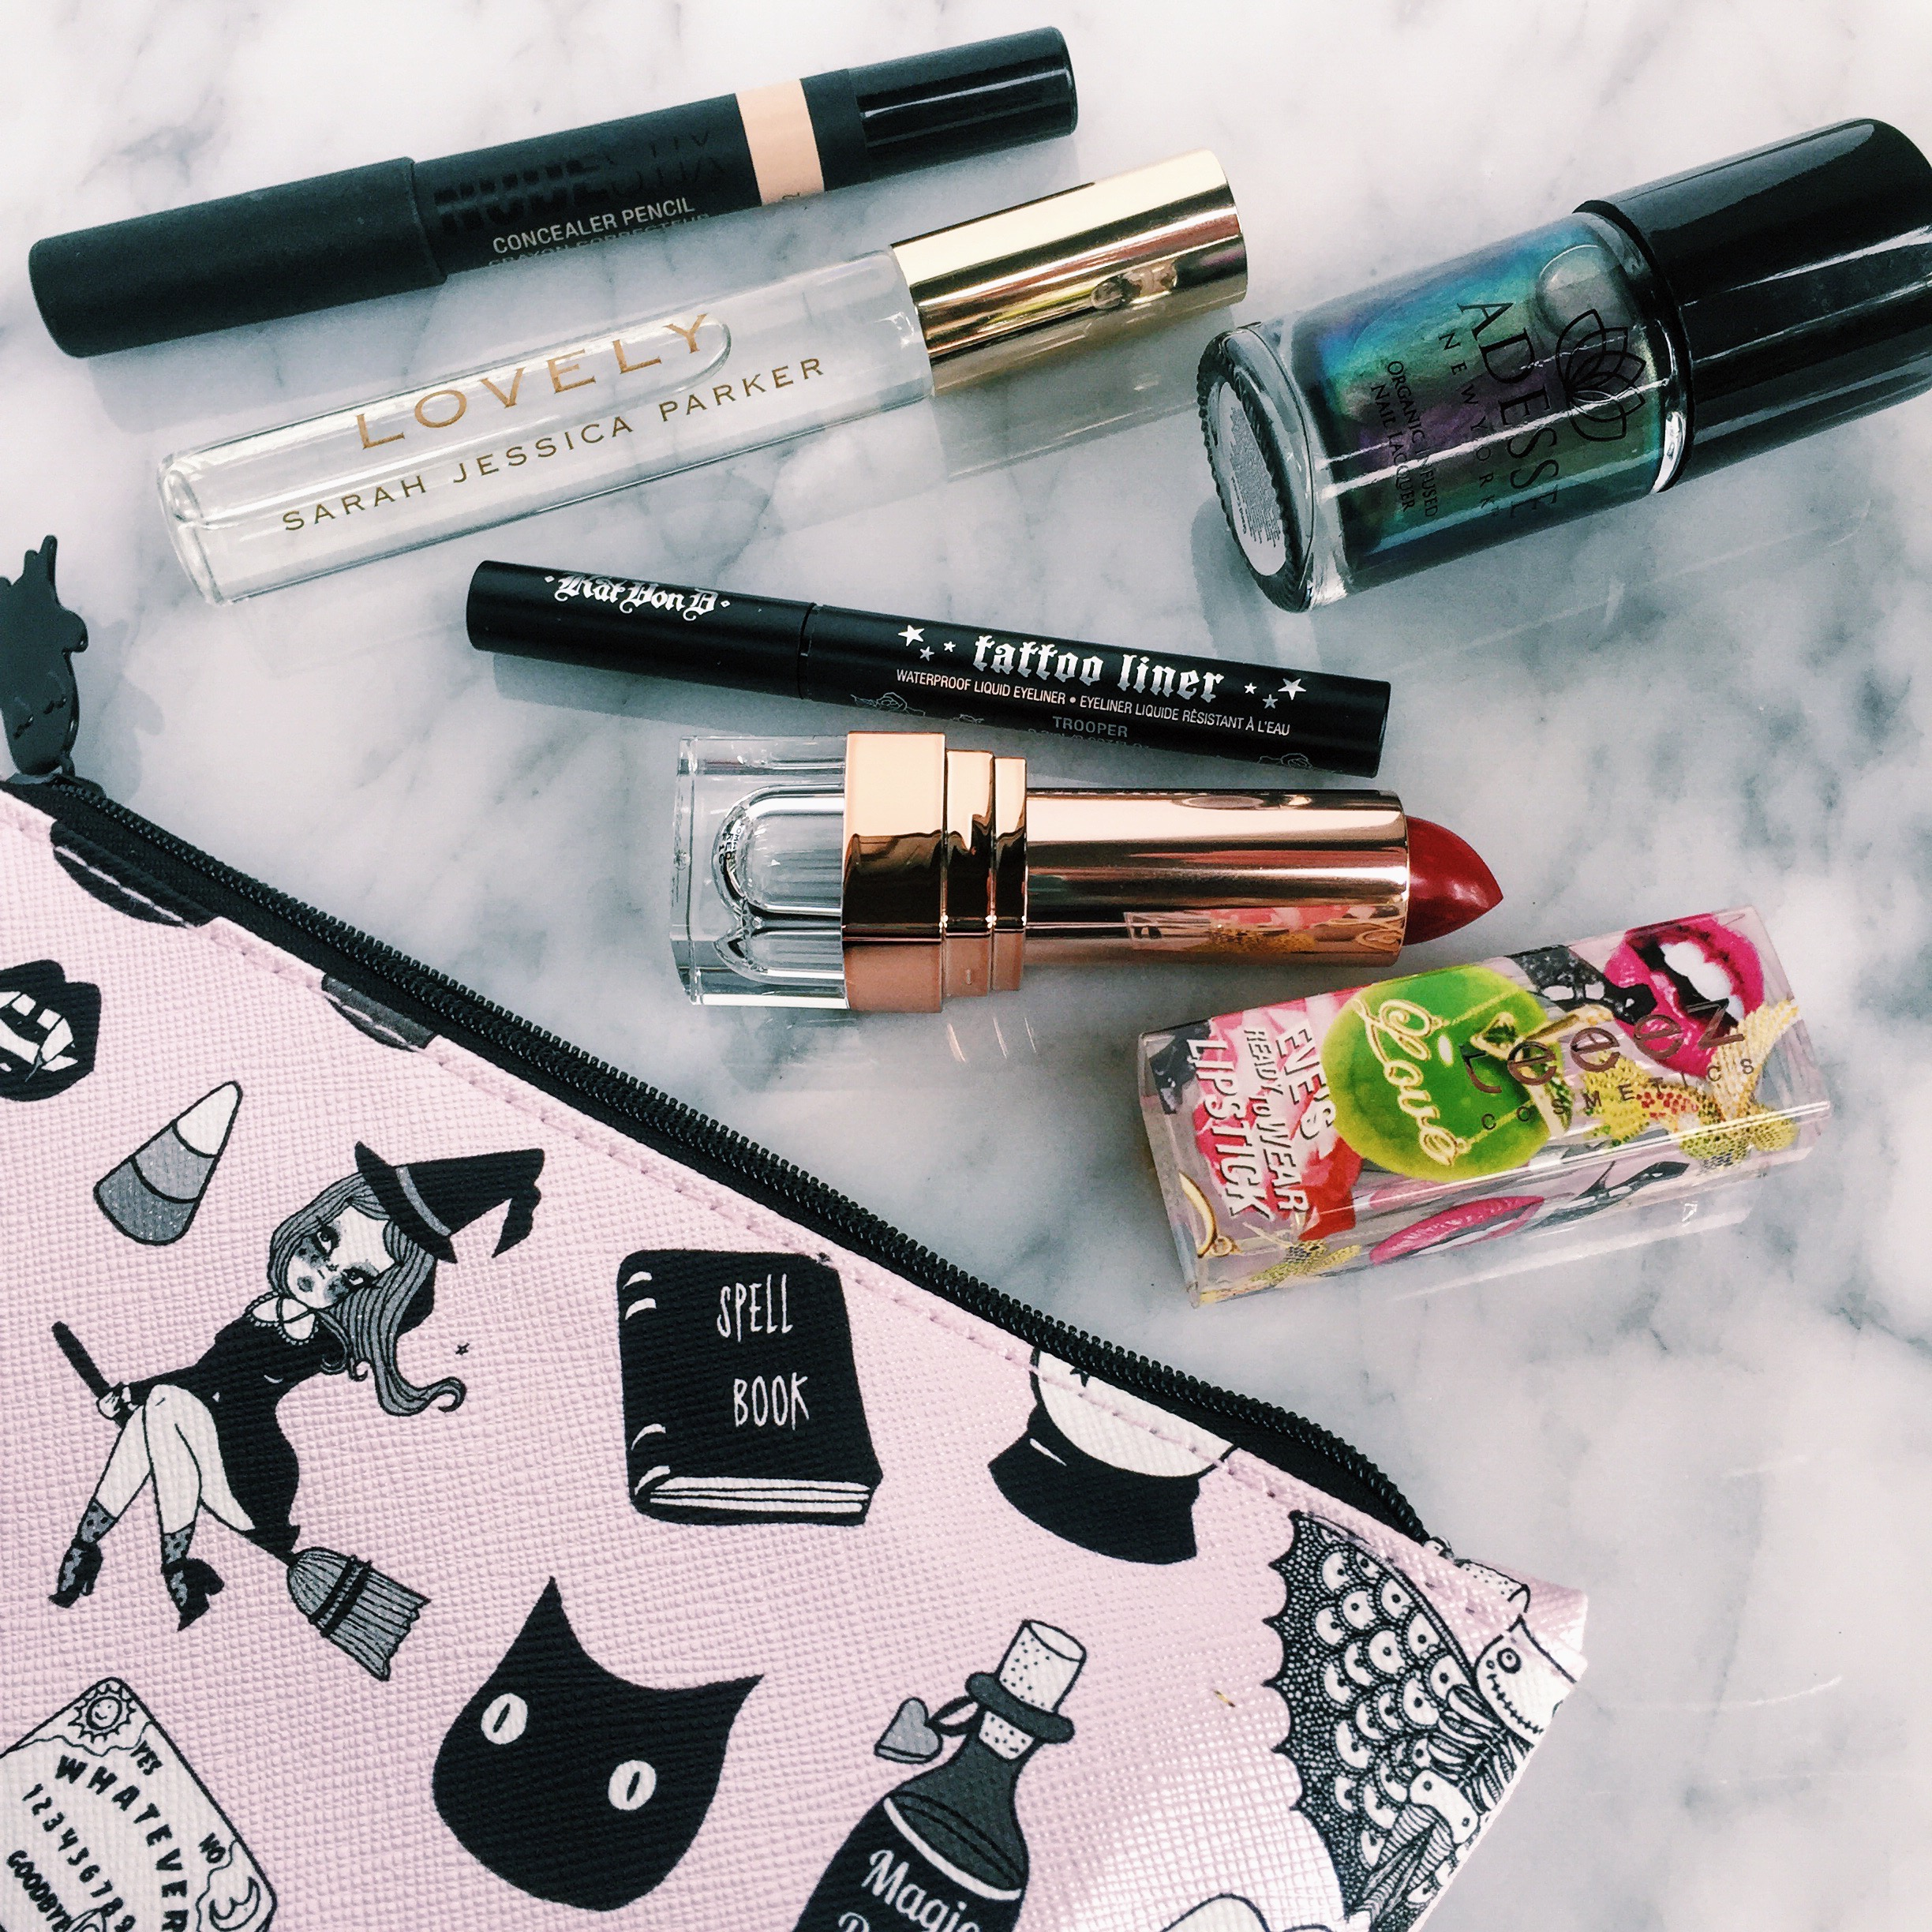 One of our Past Glam Bag from Ipsy! Full-size lipstick, nail polish, perfume roller, concealer, and a half size eyeliner.